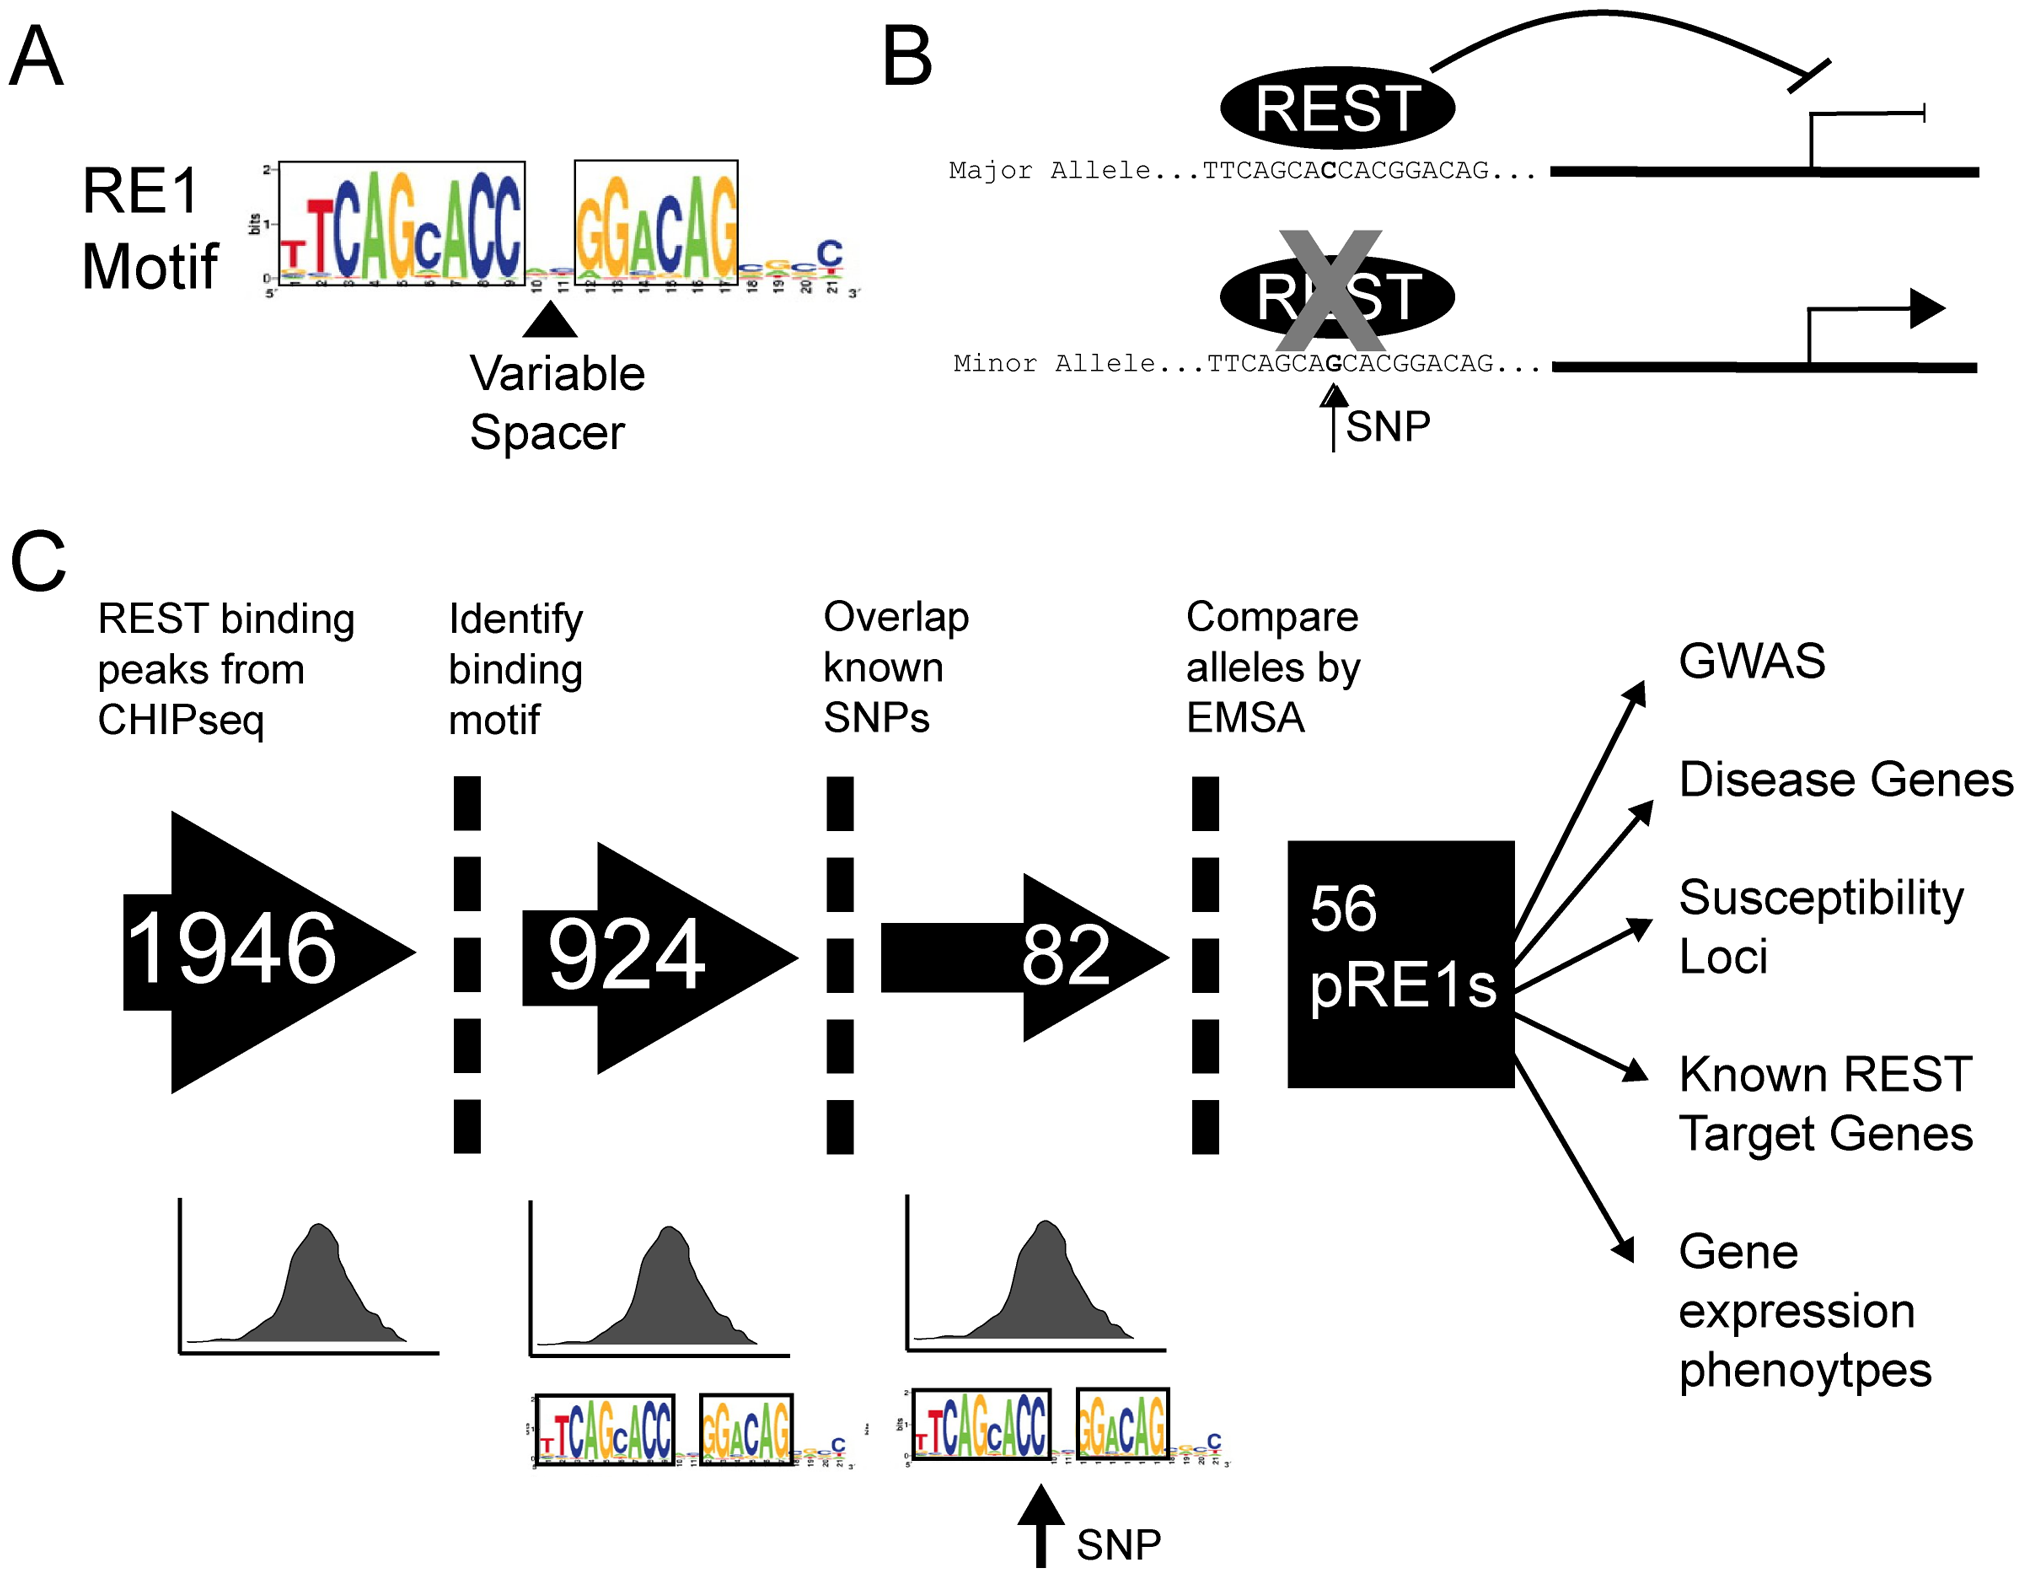 Experimental pipeline to discover SNPs that affect gene repression by REST.